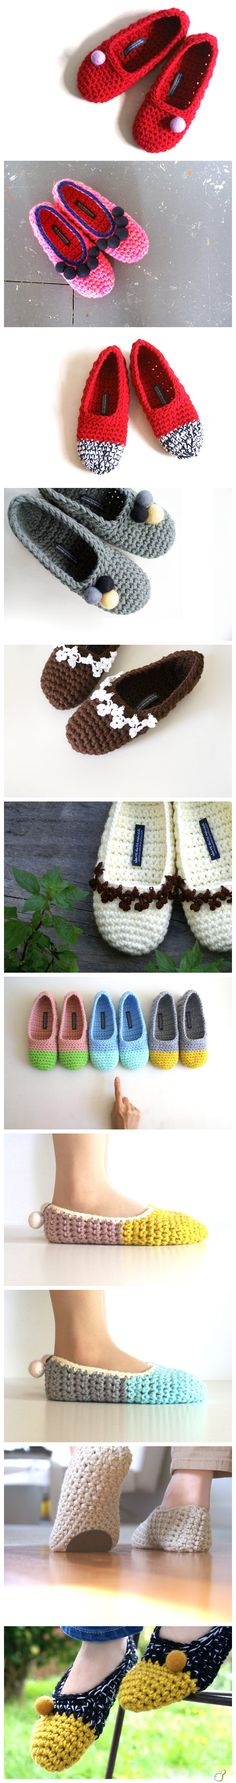 Slipper love